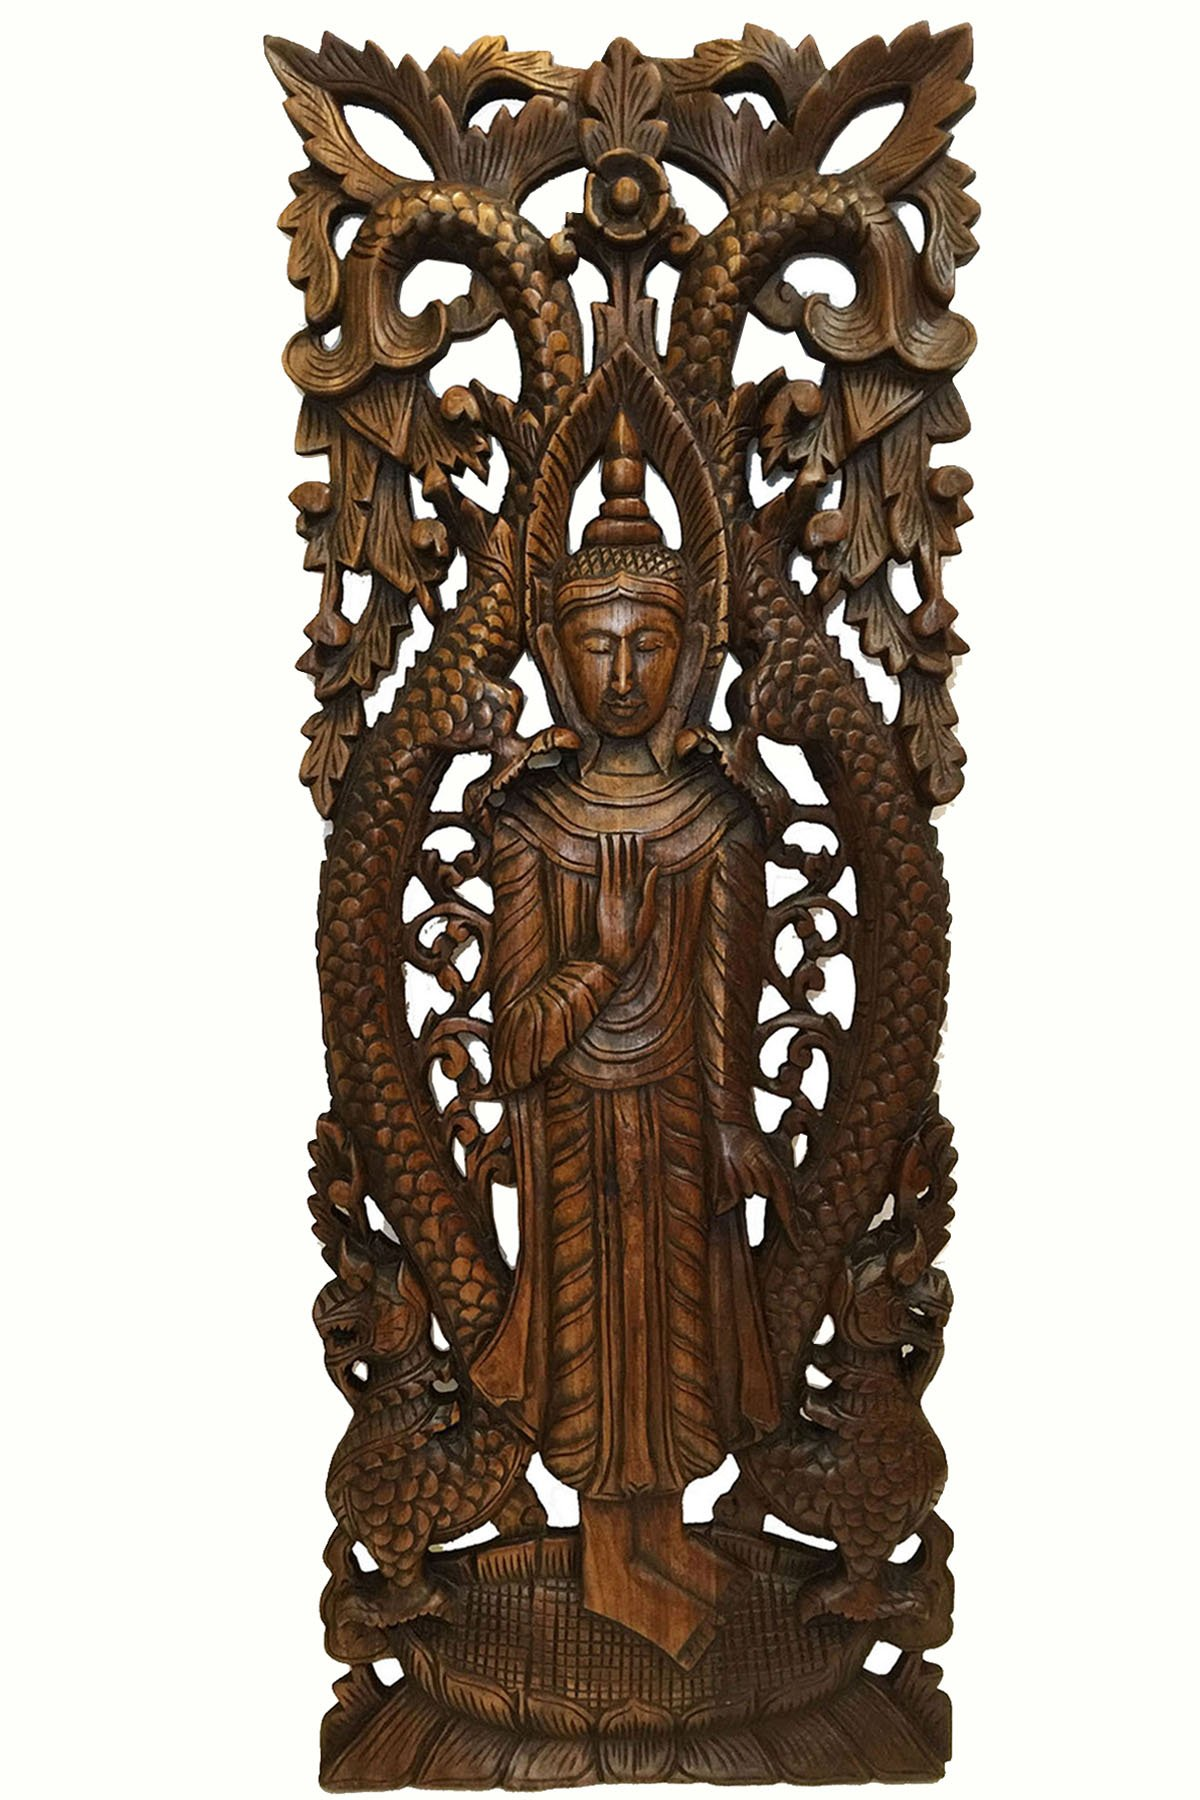 Thai Standing Buddha with Dragon Wood Carved Wall Art. Serenity Buddha Carved Wood Wall Panel Decor Size 35.5''x13.5'' Extra Thick Asiana Home Decor (Brown) by Asiana Home Decor